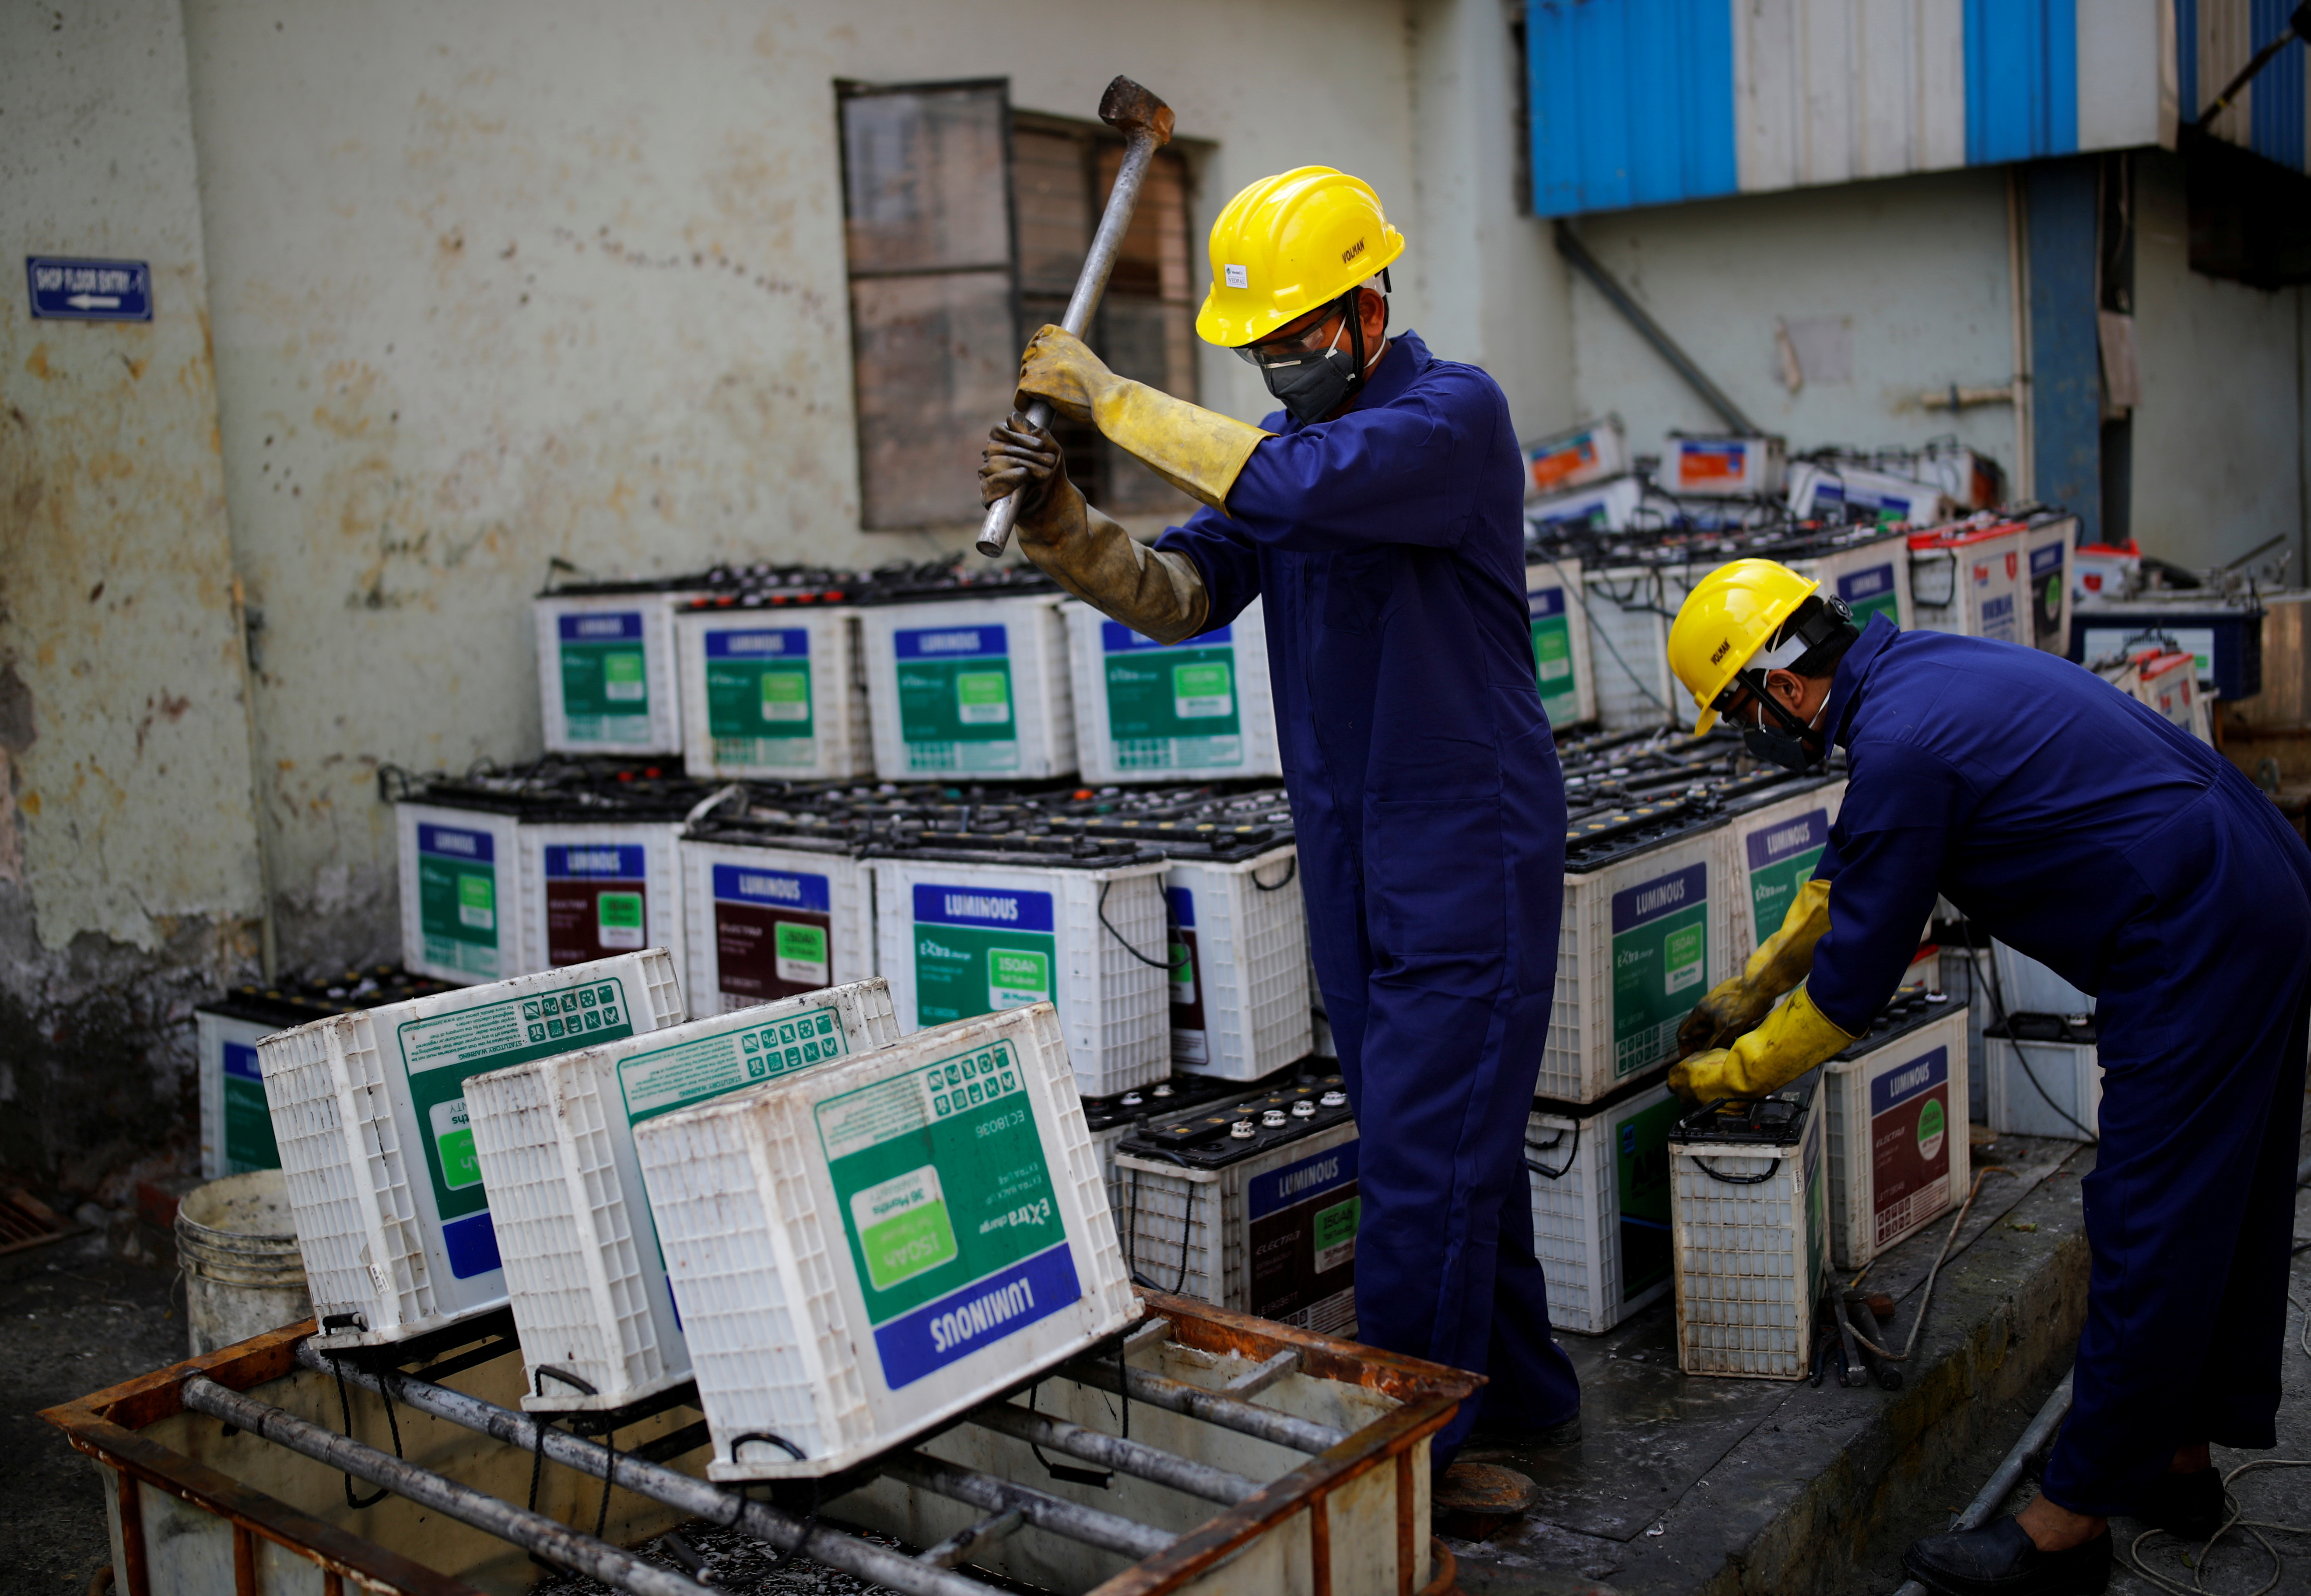 Workers dismantle batteries to obtain lead from them at ACE Green recycling Inc in Ghaziabad, on the outskirts of New Delhi, India, February 15, 2021. REUTERS/Adnan Abidi